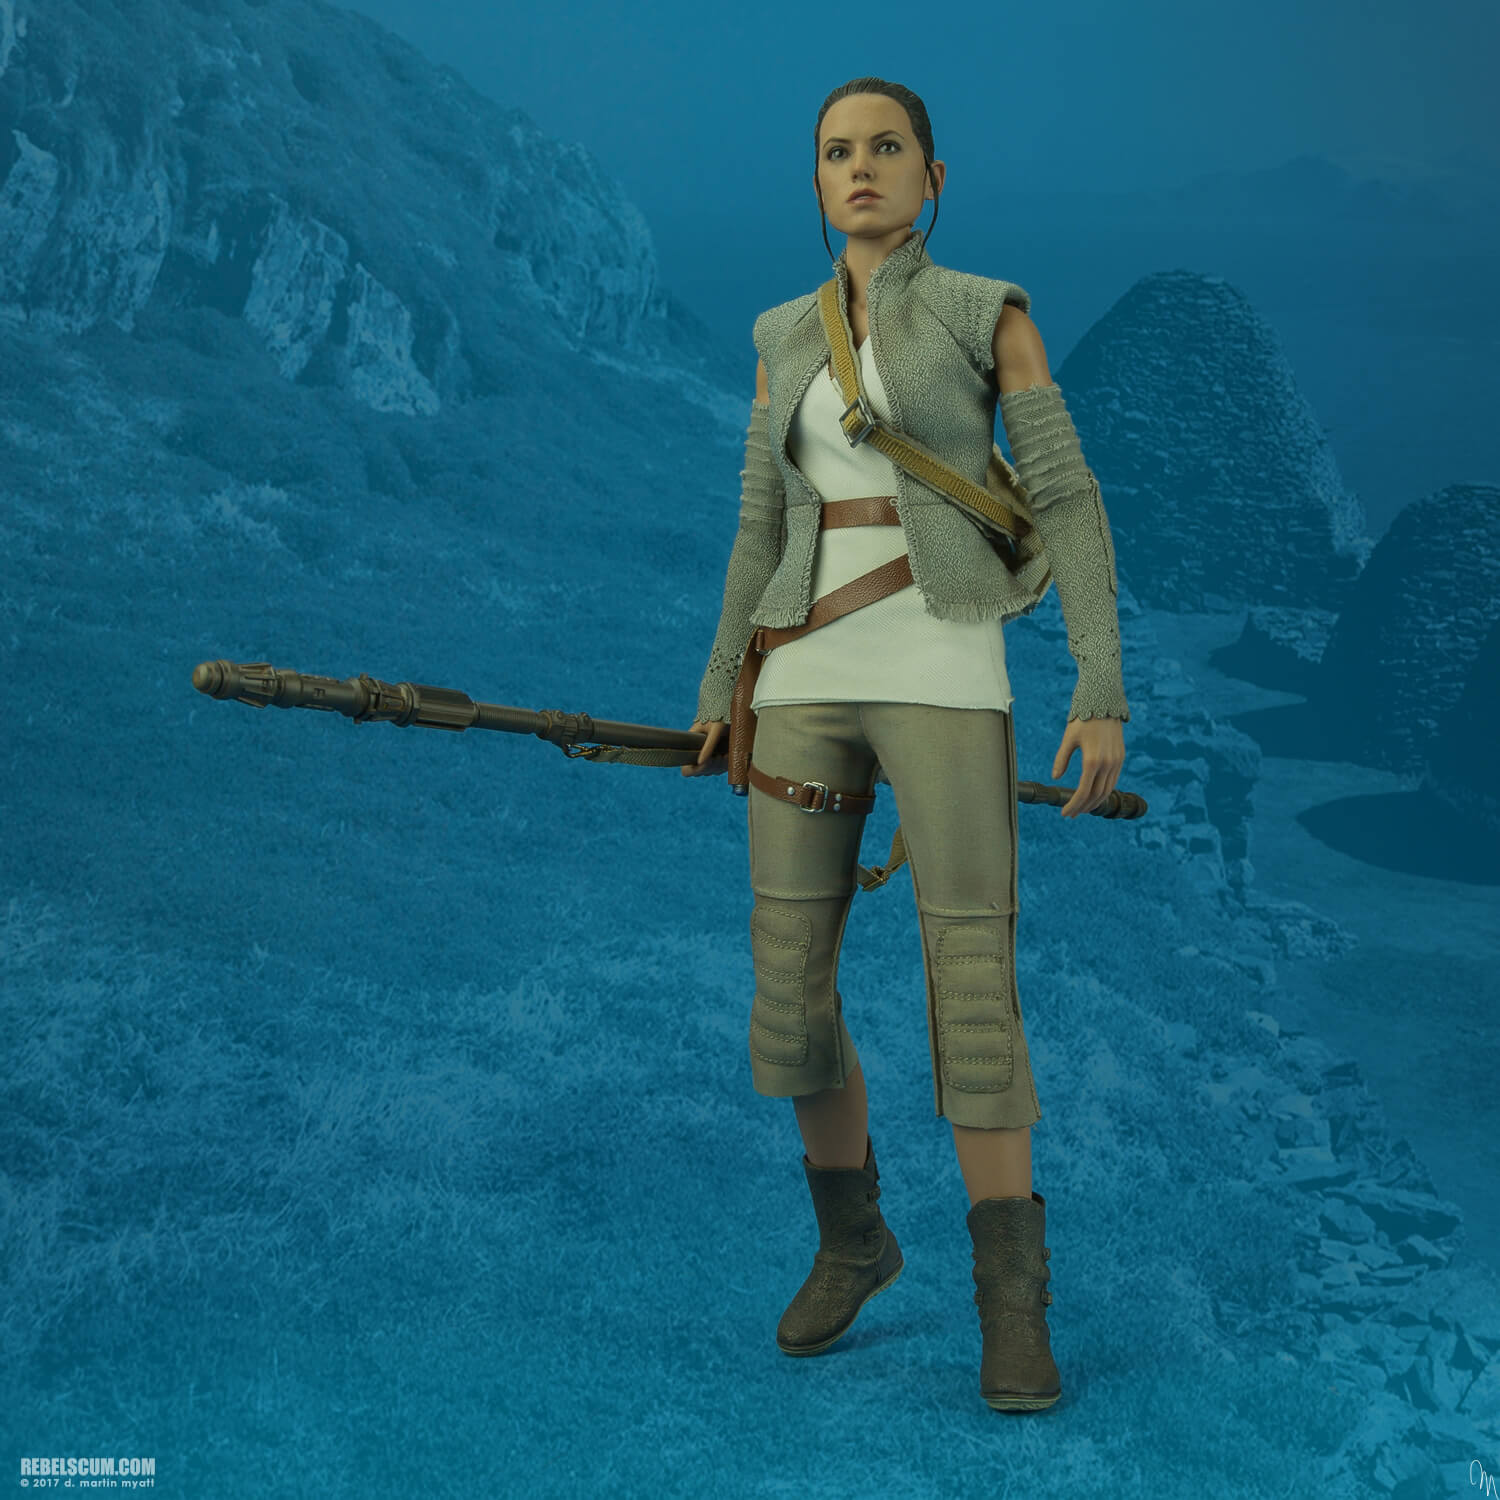 Rey hot animated pictures (3)